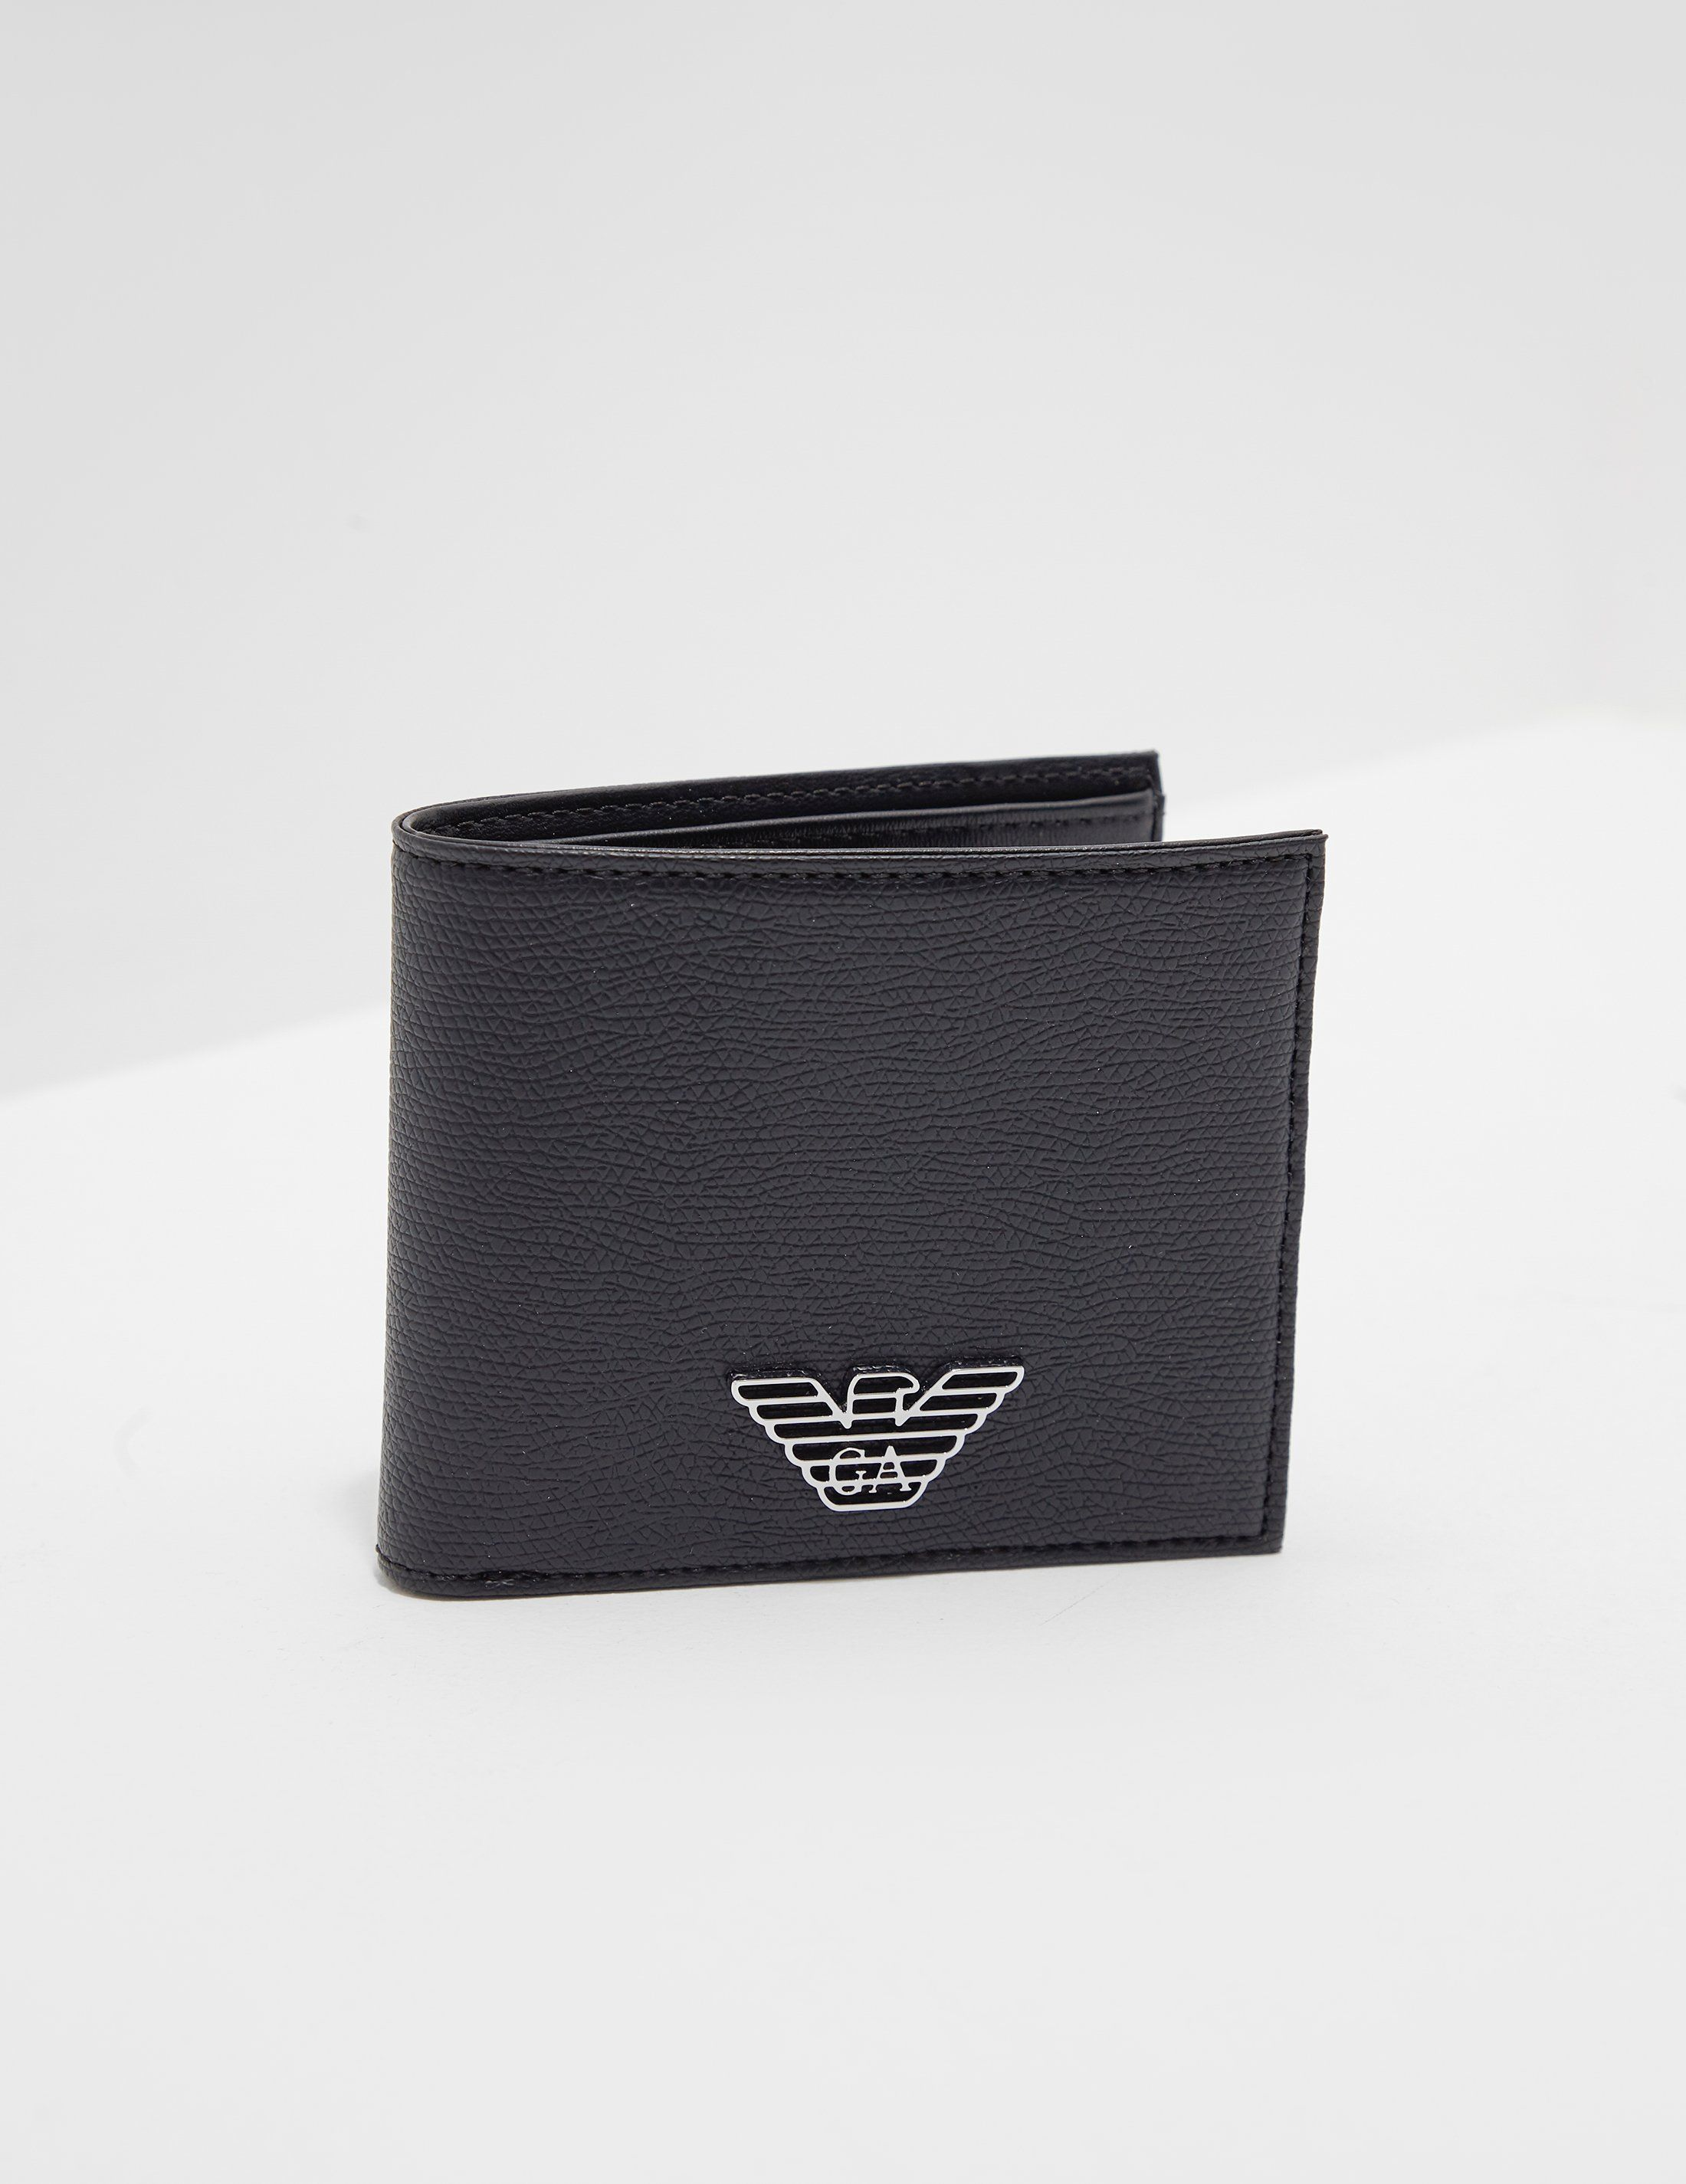 Emporio Armani Eagle Bill Wallet